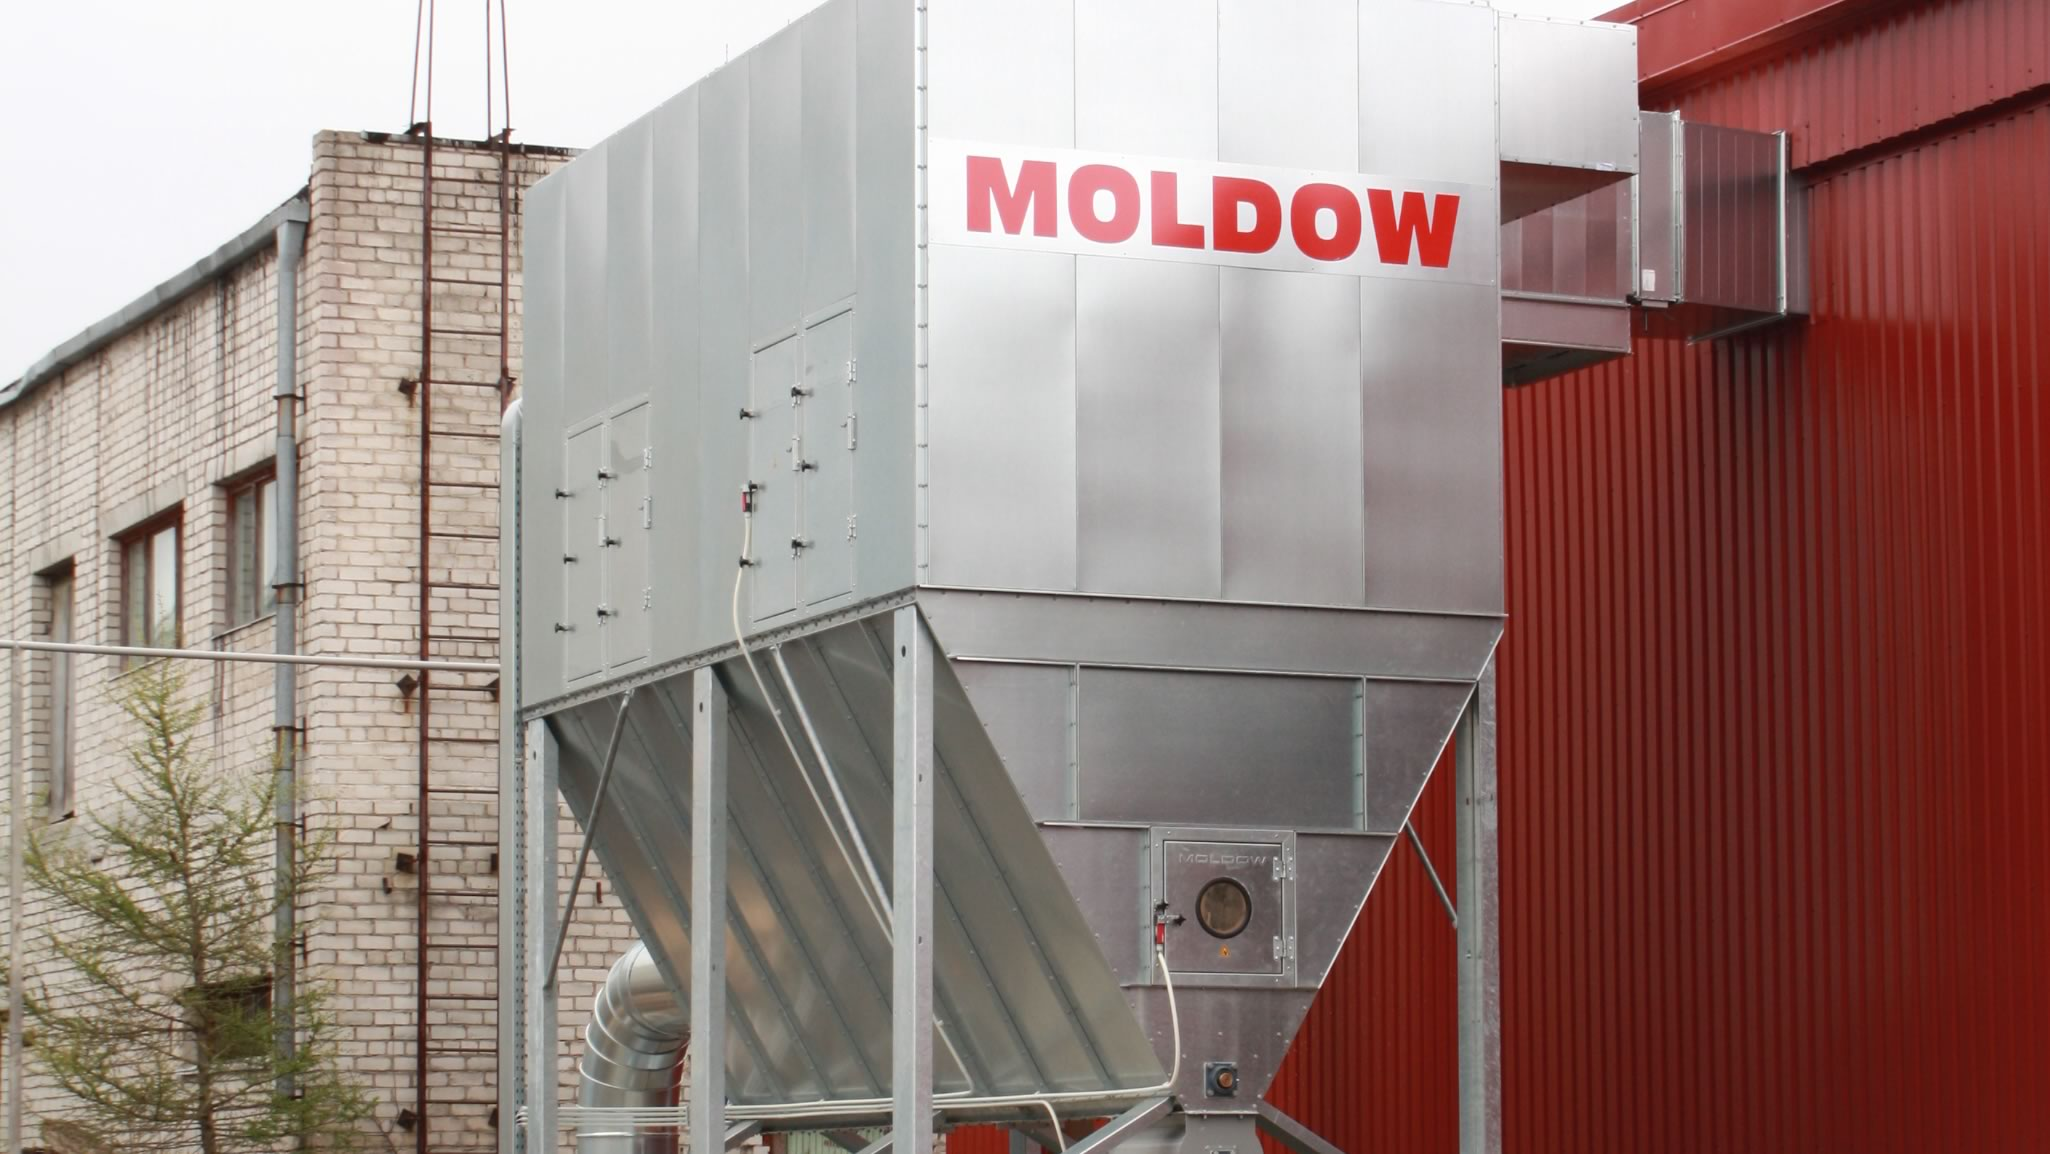 Moldow filters